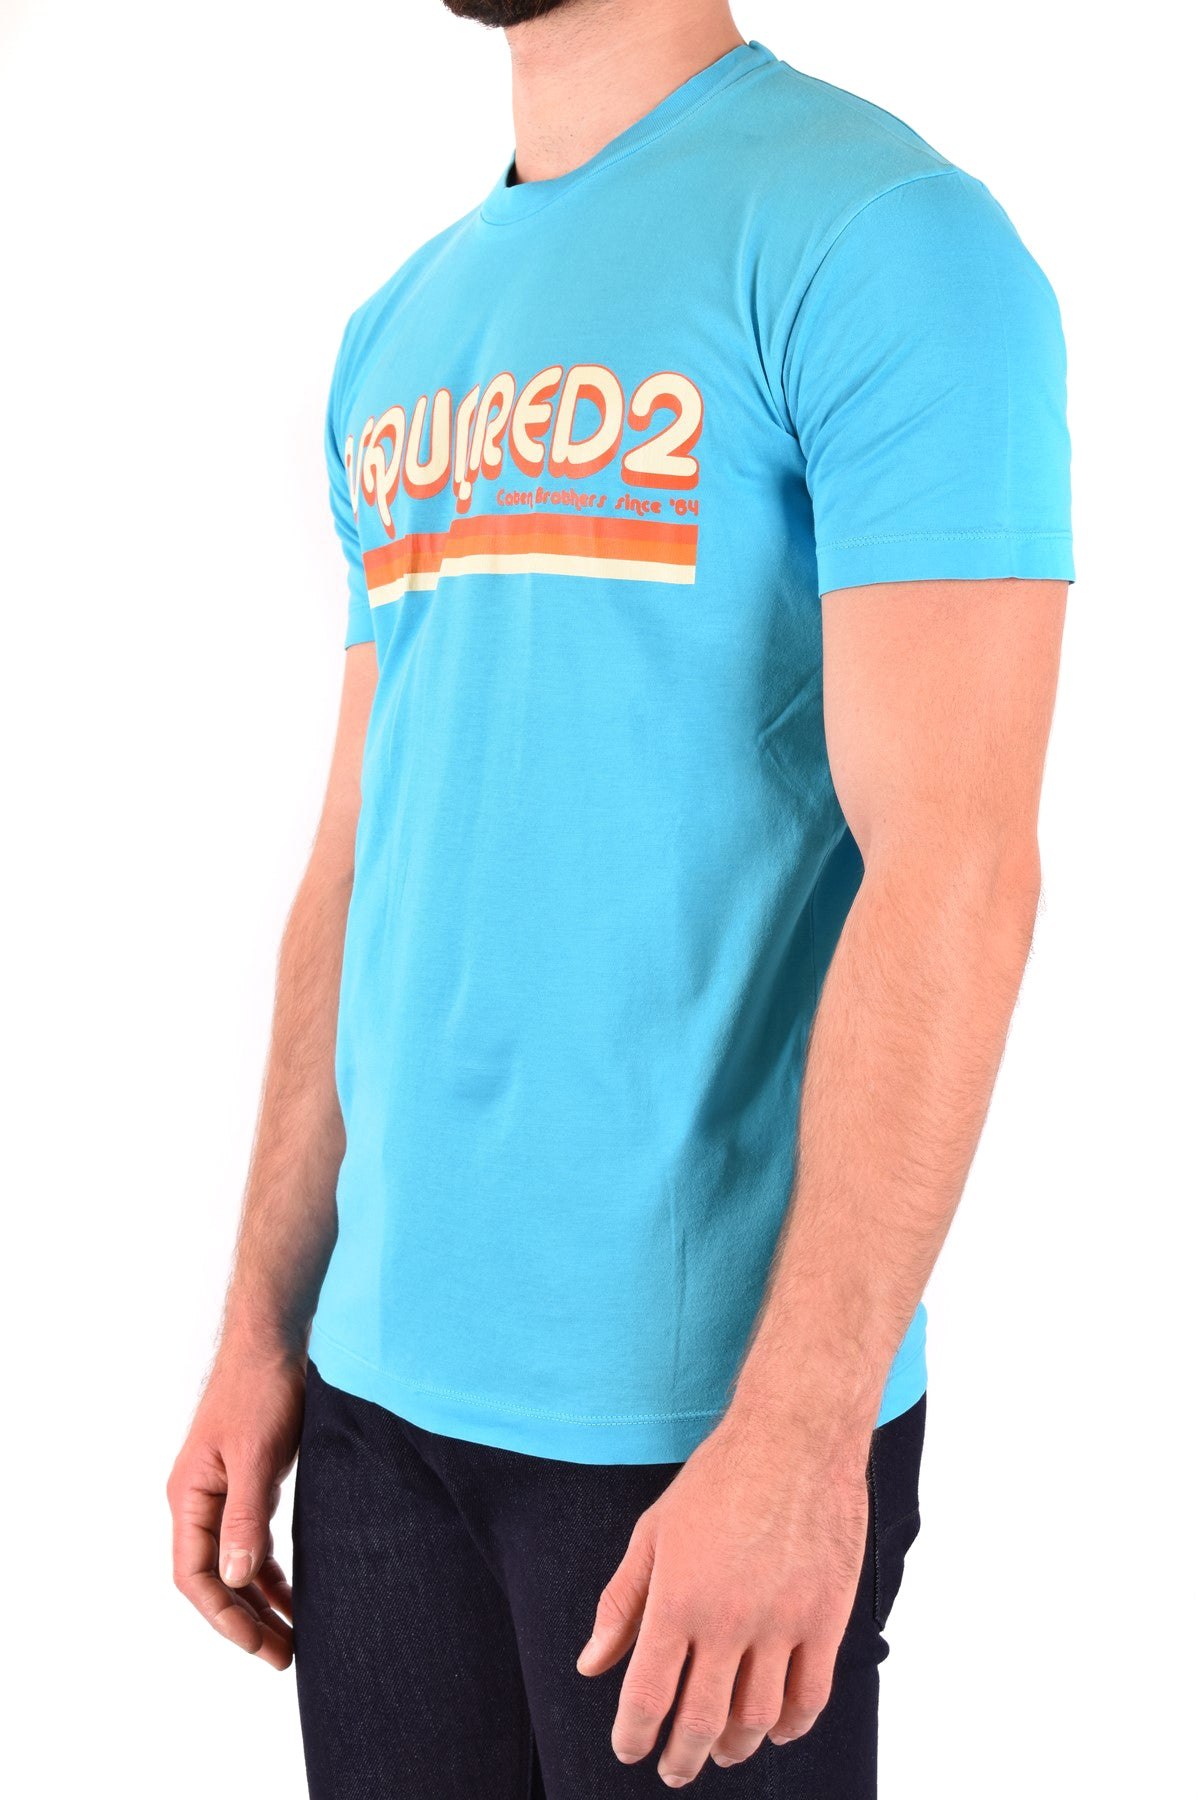 T-Shirt Dsquared-Men's Fashion - Men's Clothing - Tops & Tees - T-Shirts-Product Details Terms: New With LabelClothing Type: T-ShirtMain Color: BlueSeason: Spring / SummerMade In: ItalyGender: ManSize: IntComposition: Cotton 100%Year: 2020Manufacturer Part Number: S71Gd0887-Keyomi-Sook